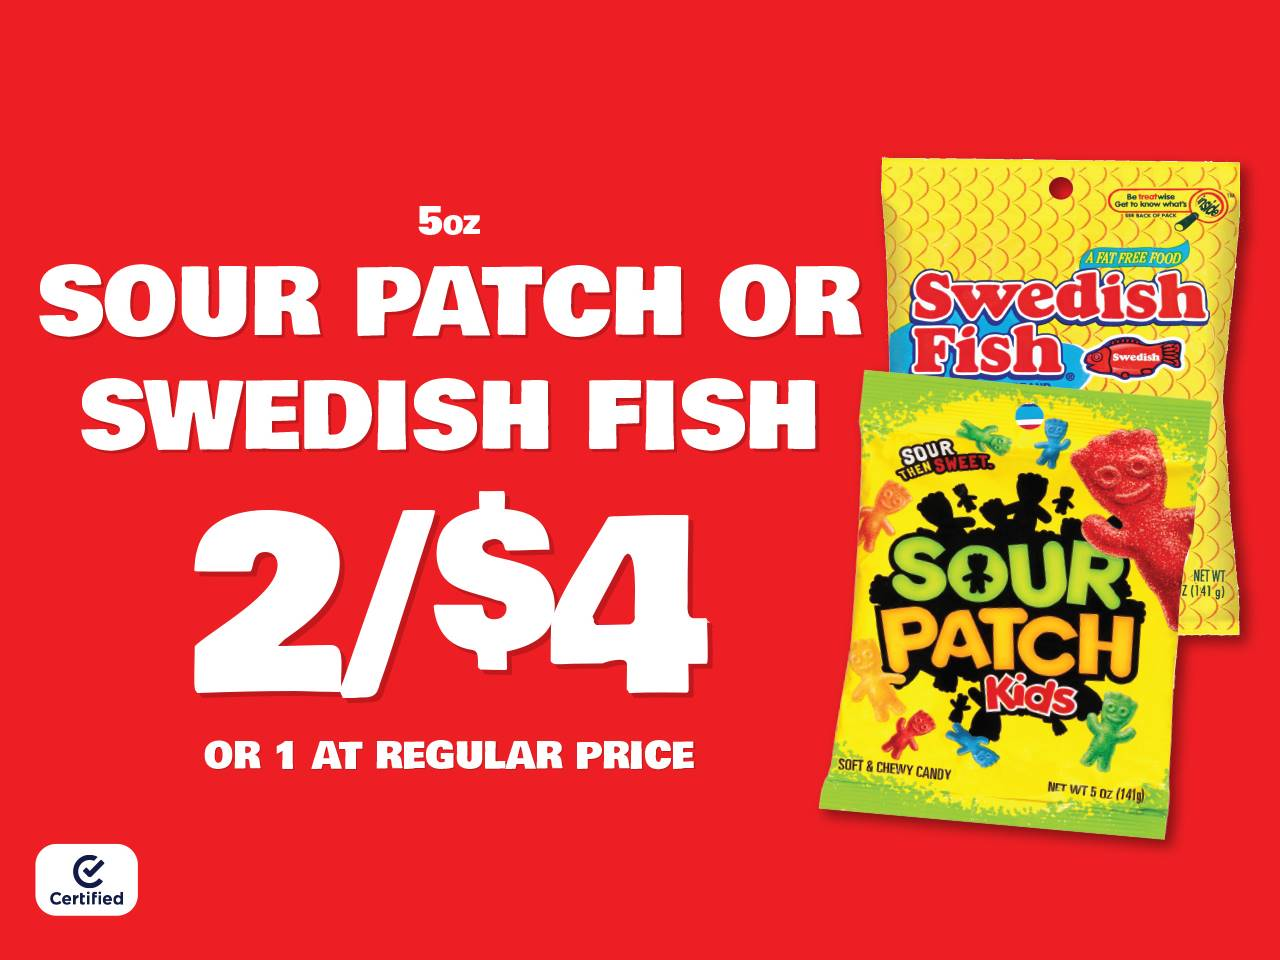 5oz Sour Patch or Swedish Fish 2 for $4 or 1 at Reg Price